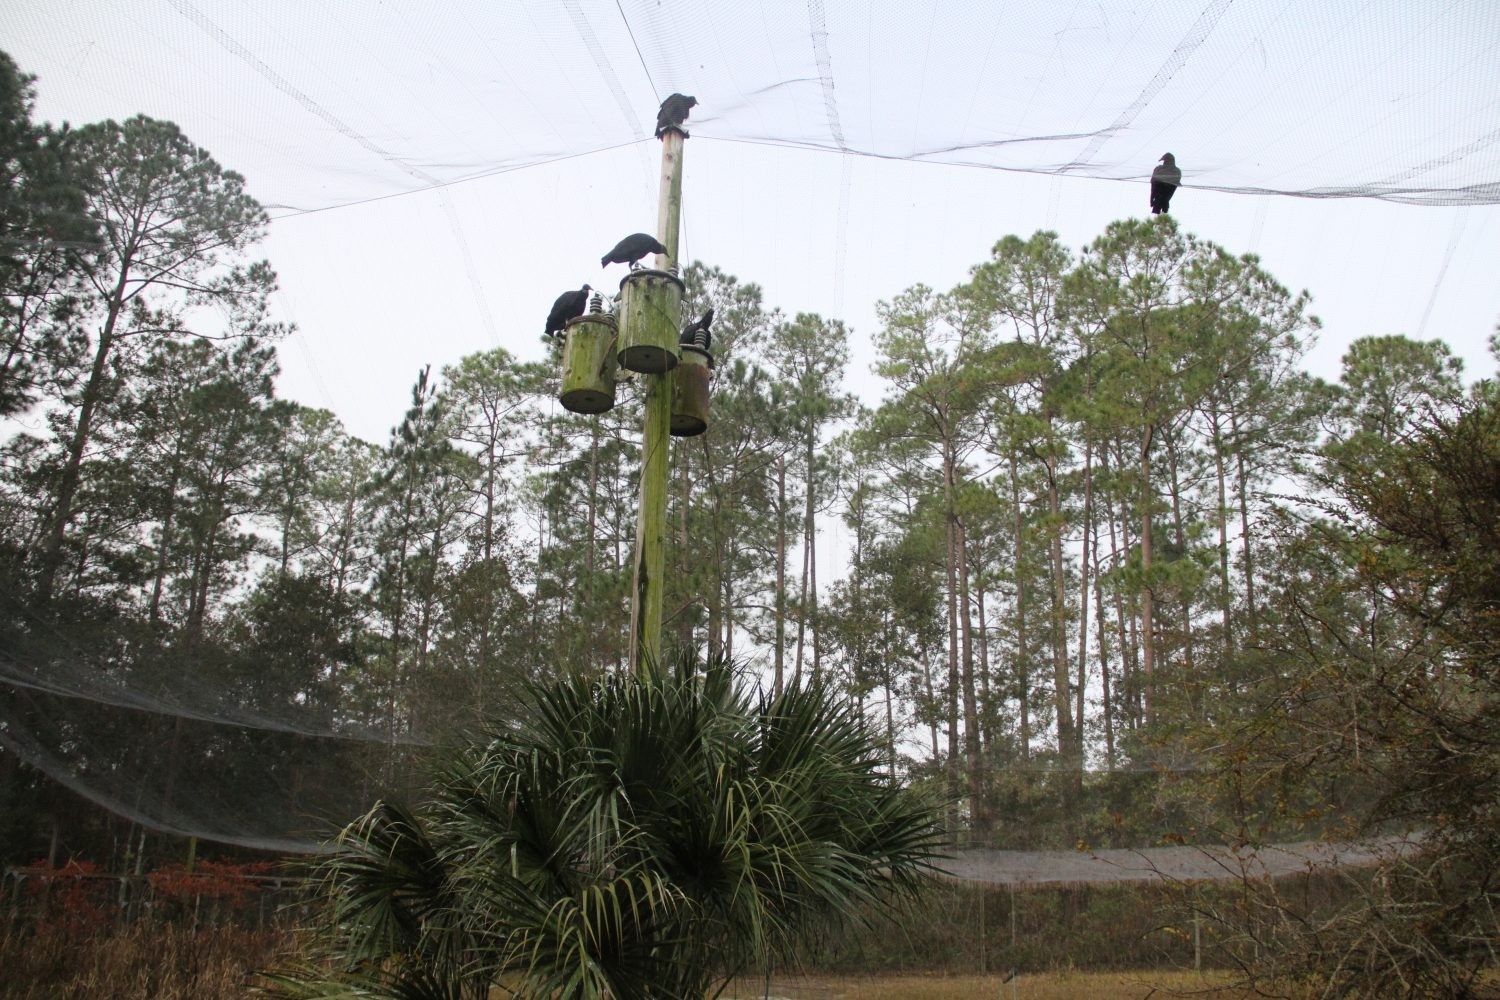 The National Wildlife Research Center Gainesville Field Station is a 26-acre site with eight enclosures and two ½ acre flight pens, one of which is used to study vultures. Around feeding time, vultures in the area will gather near the flight pen hoping to get some of the food.